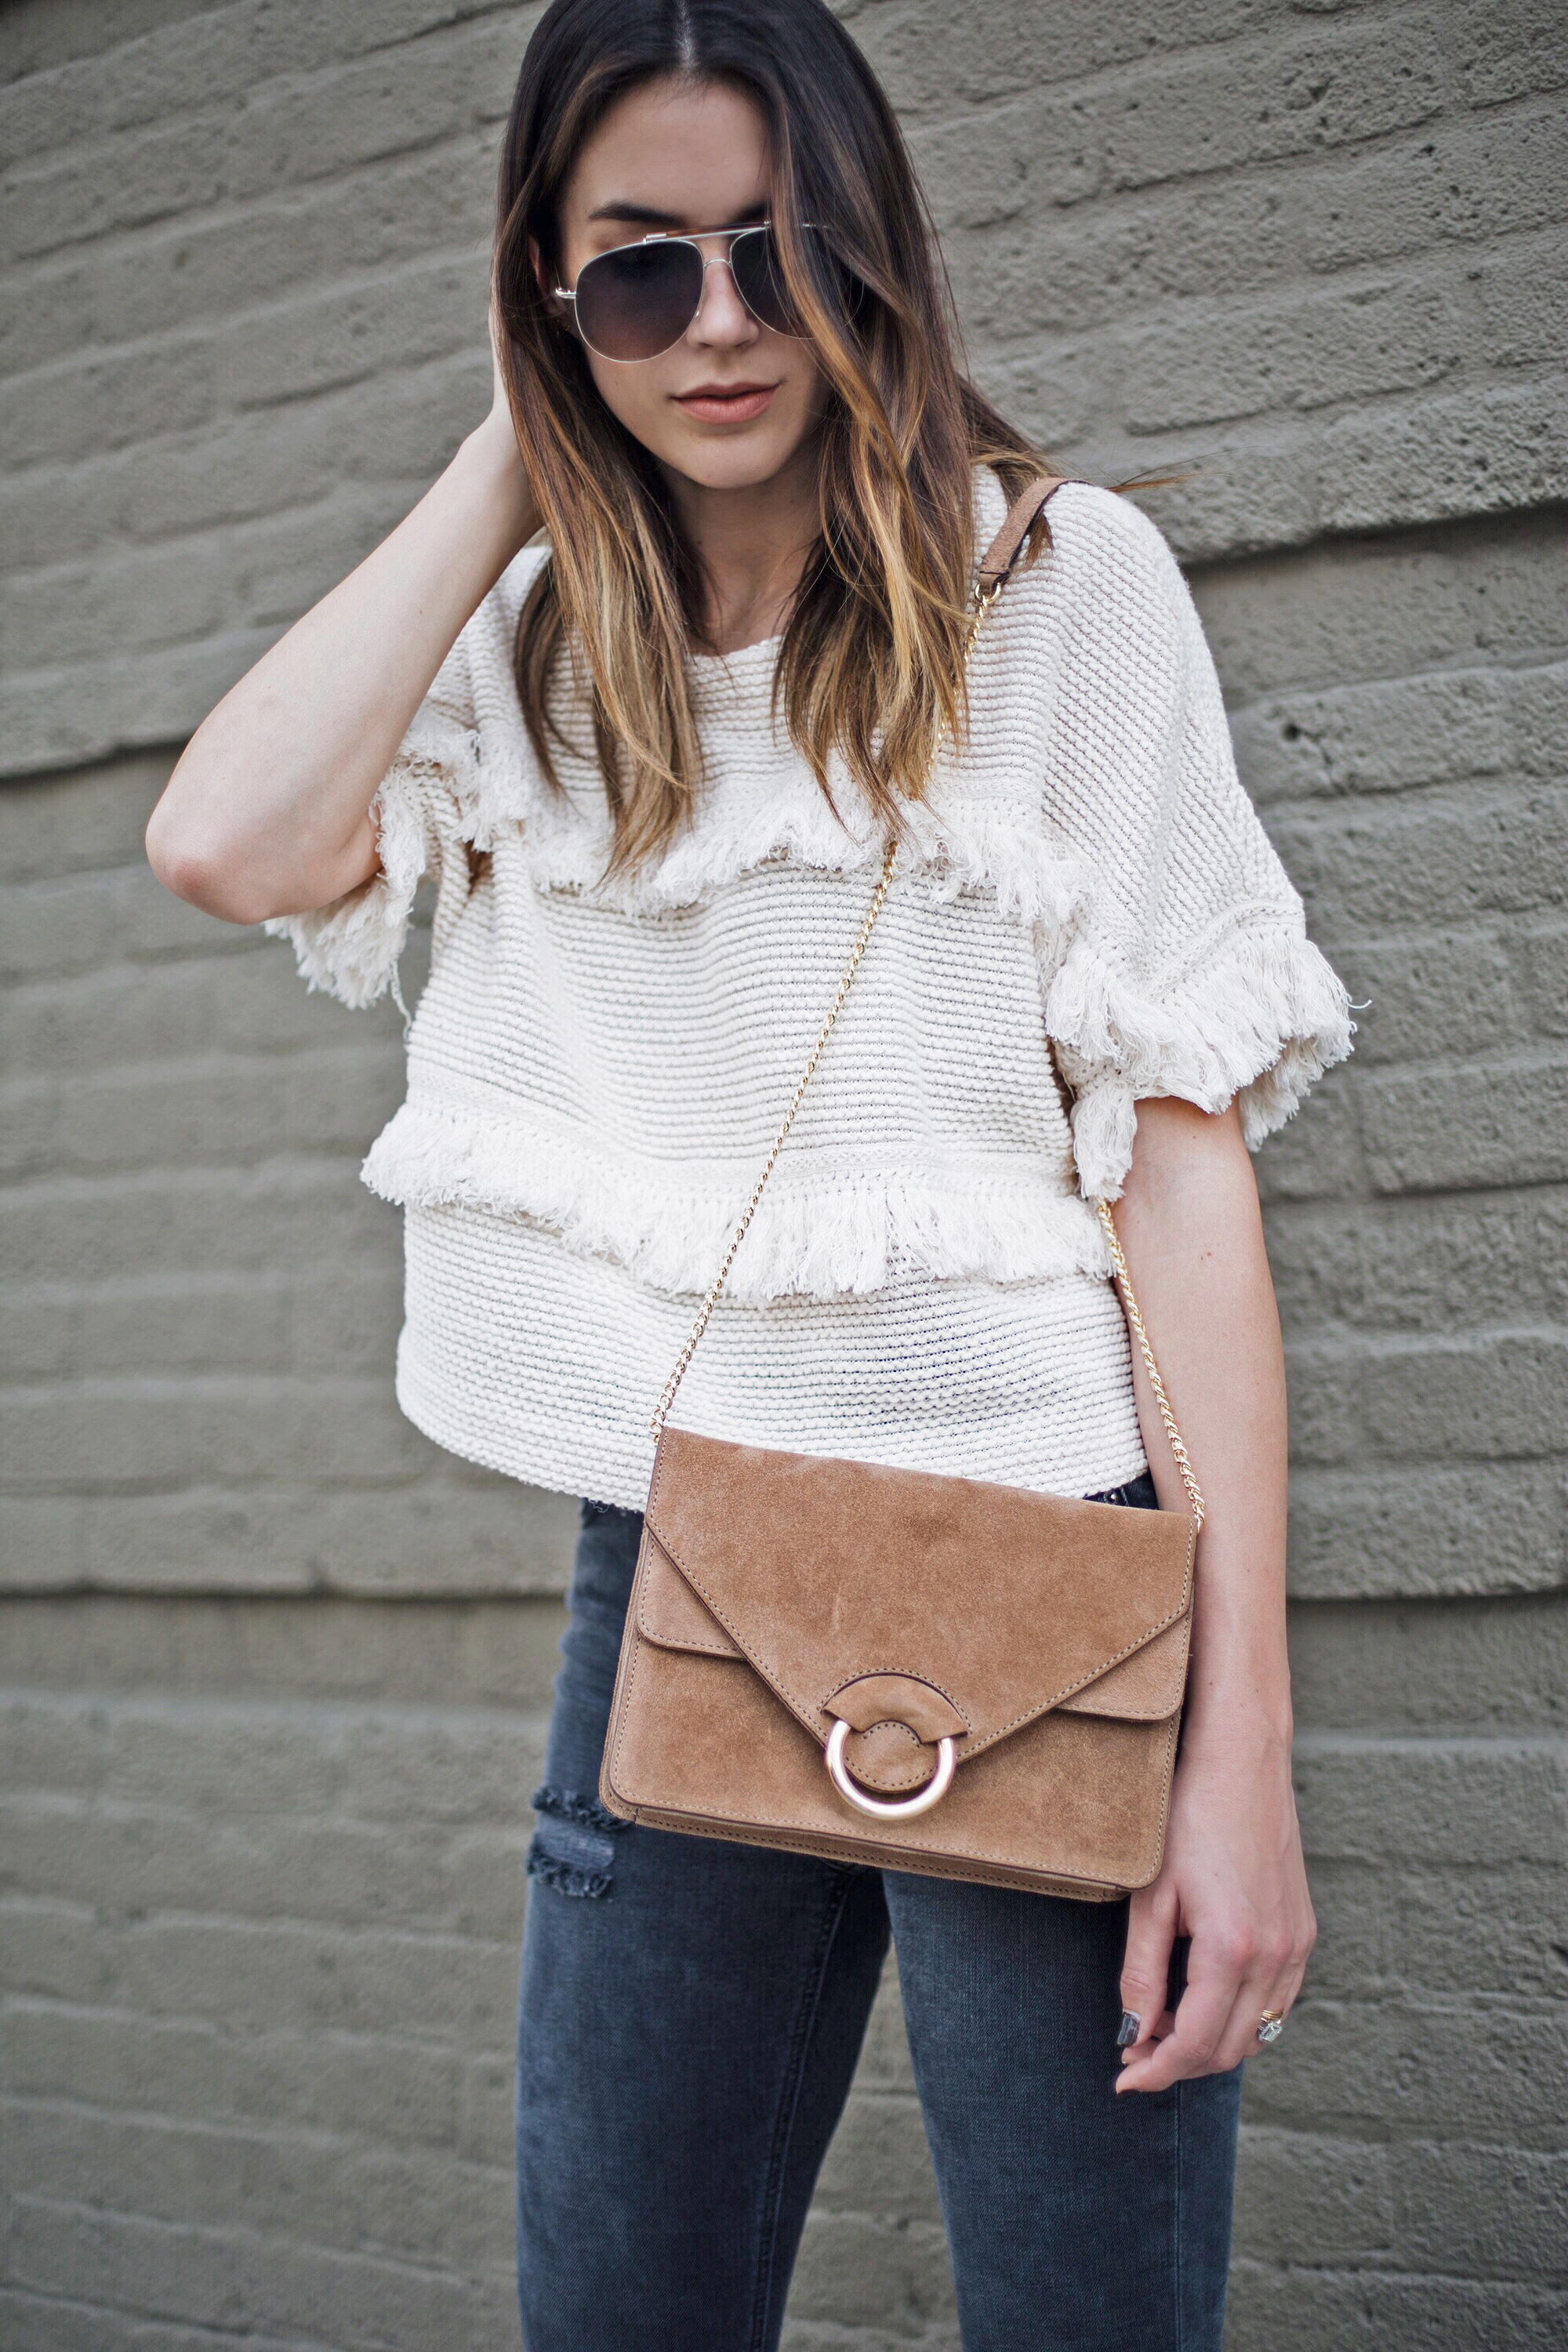 Tan Suede Crossbody Chain bag